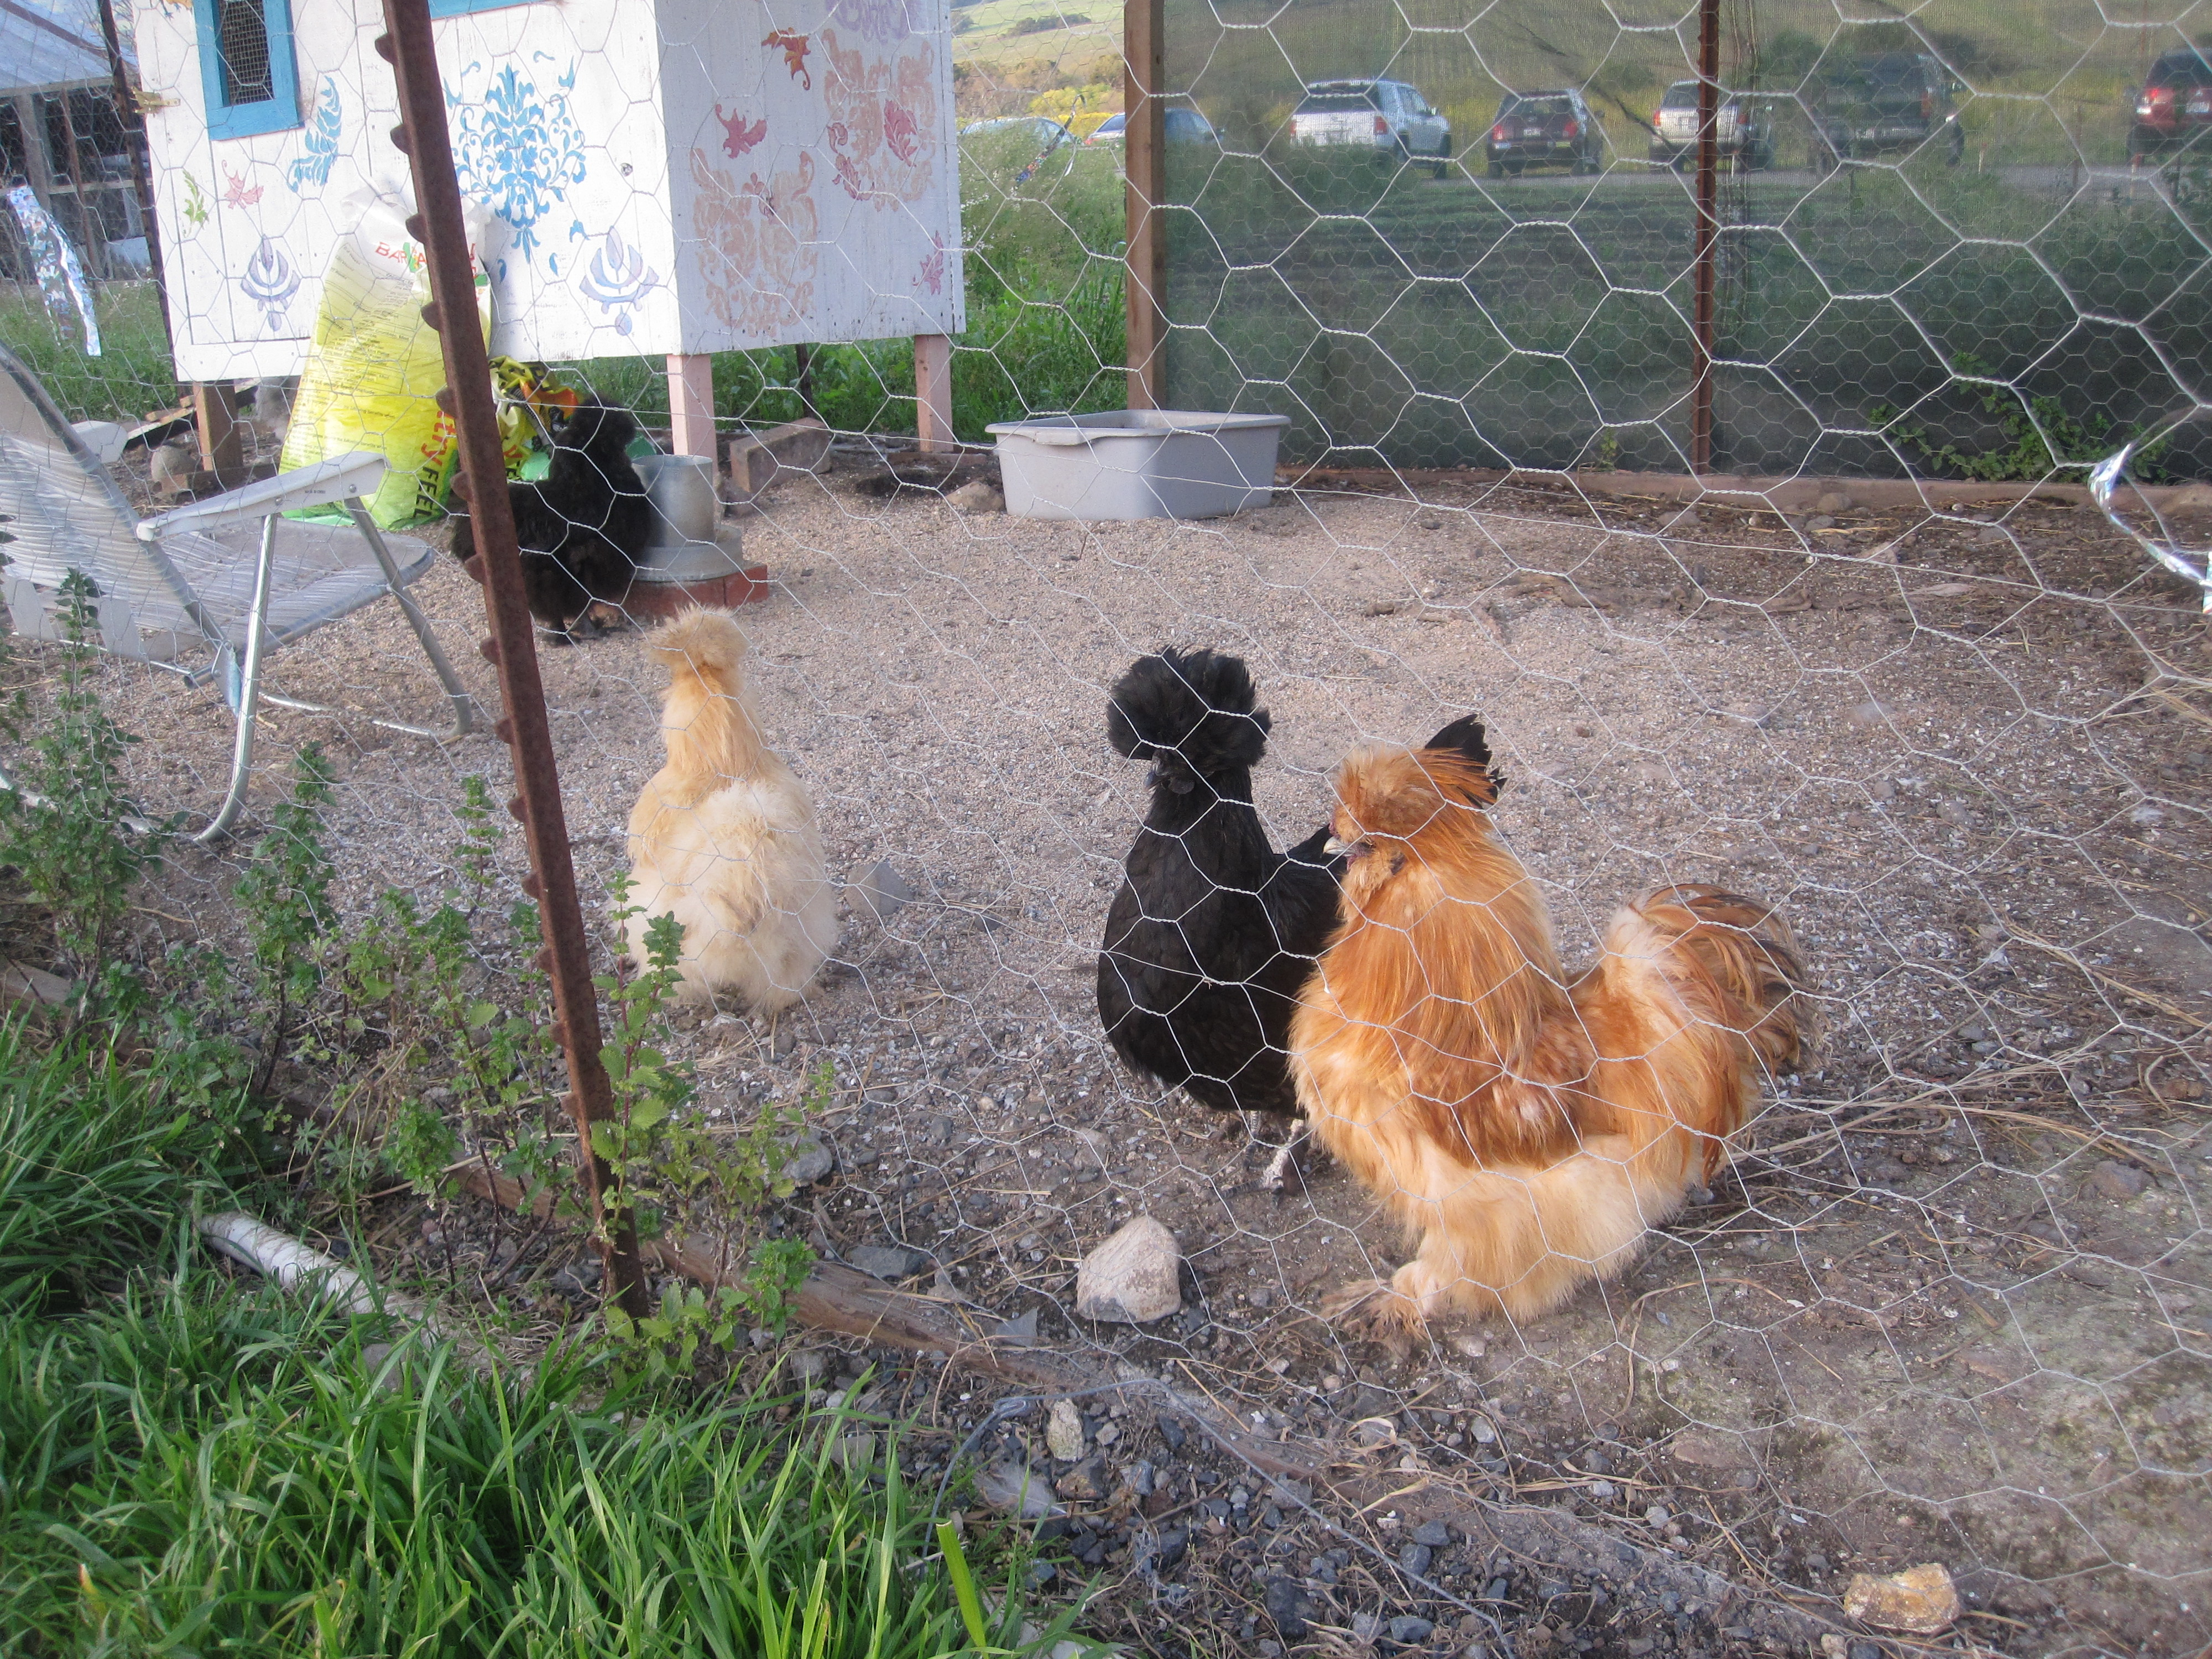 Upon arriving at the location of the barn dance, Green String Farm, I was greeted by the world's most adorable chickens!